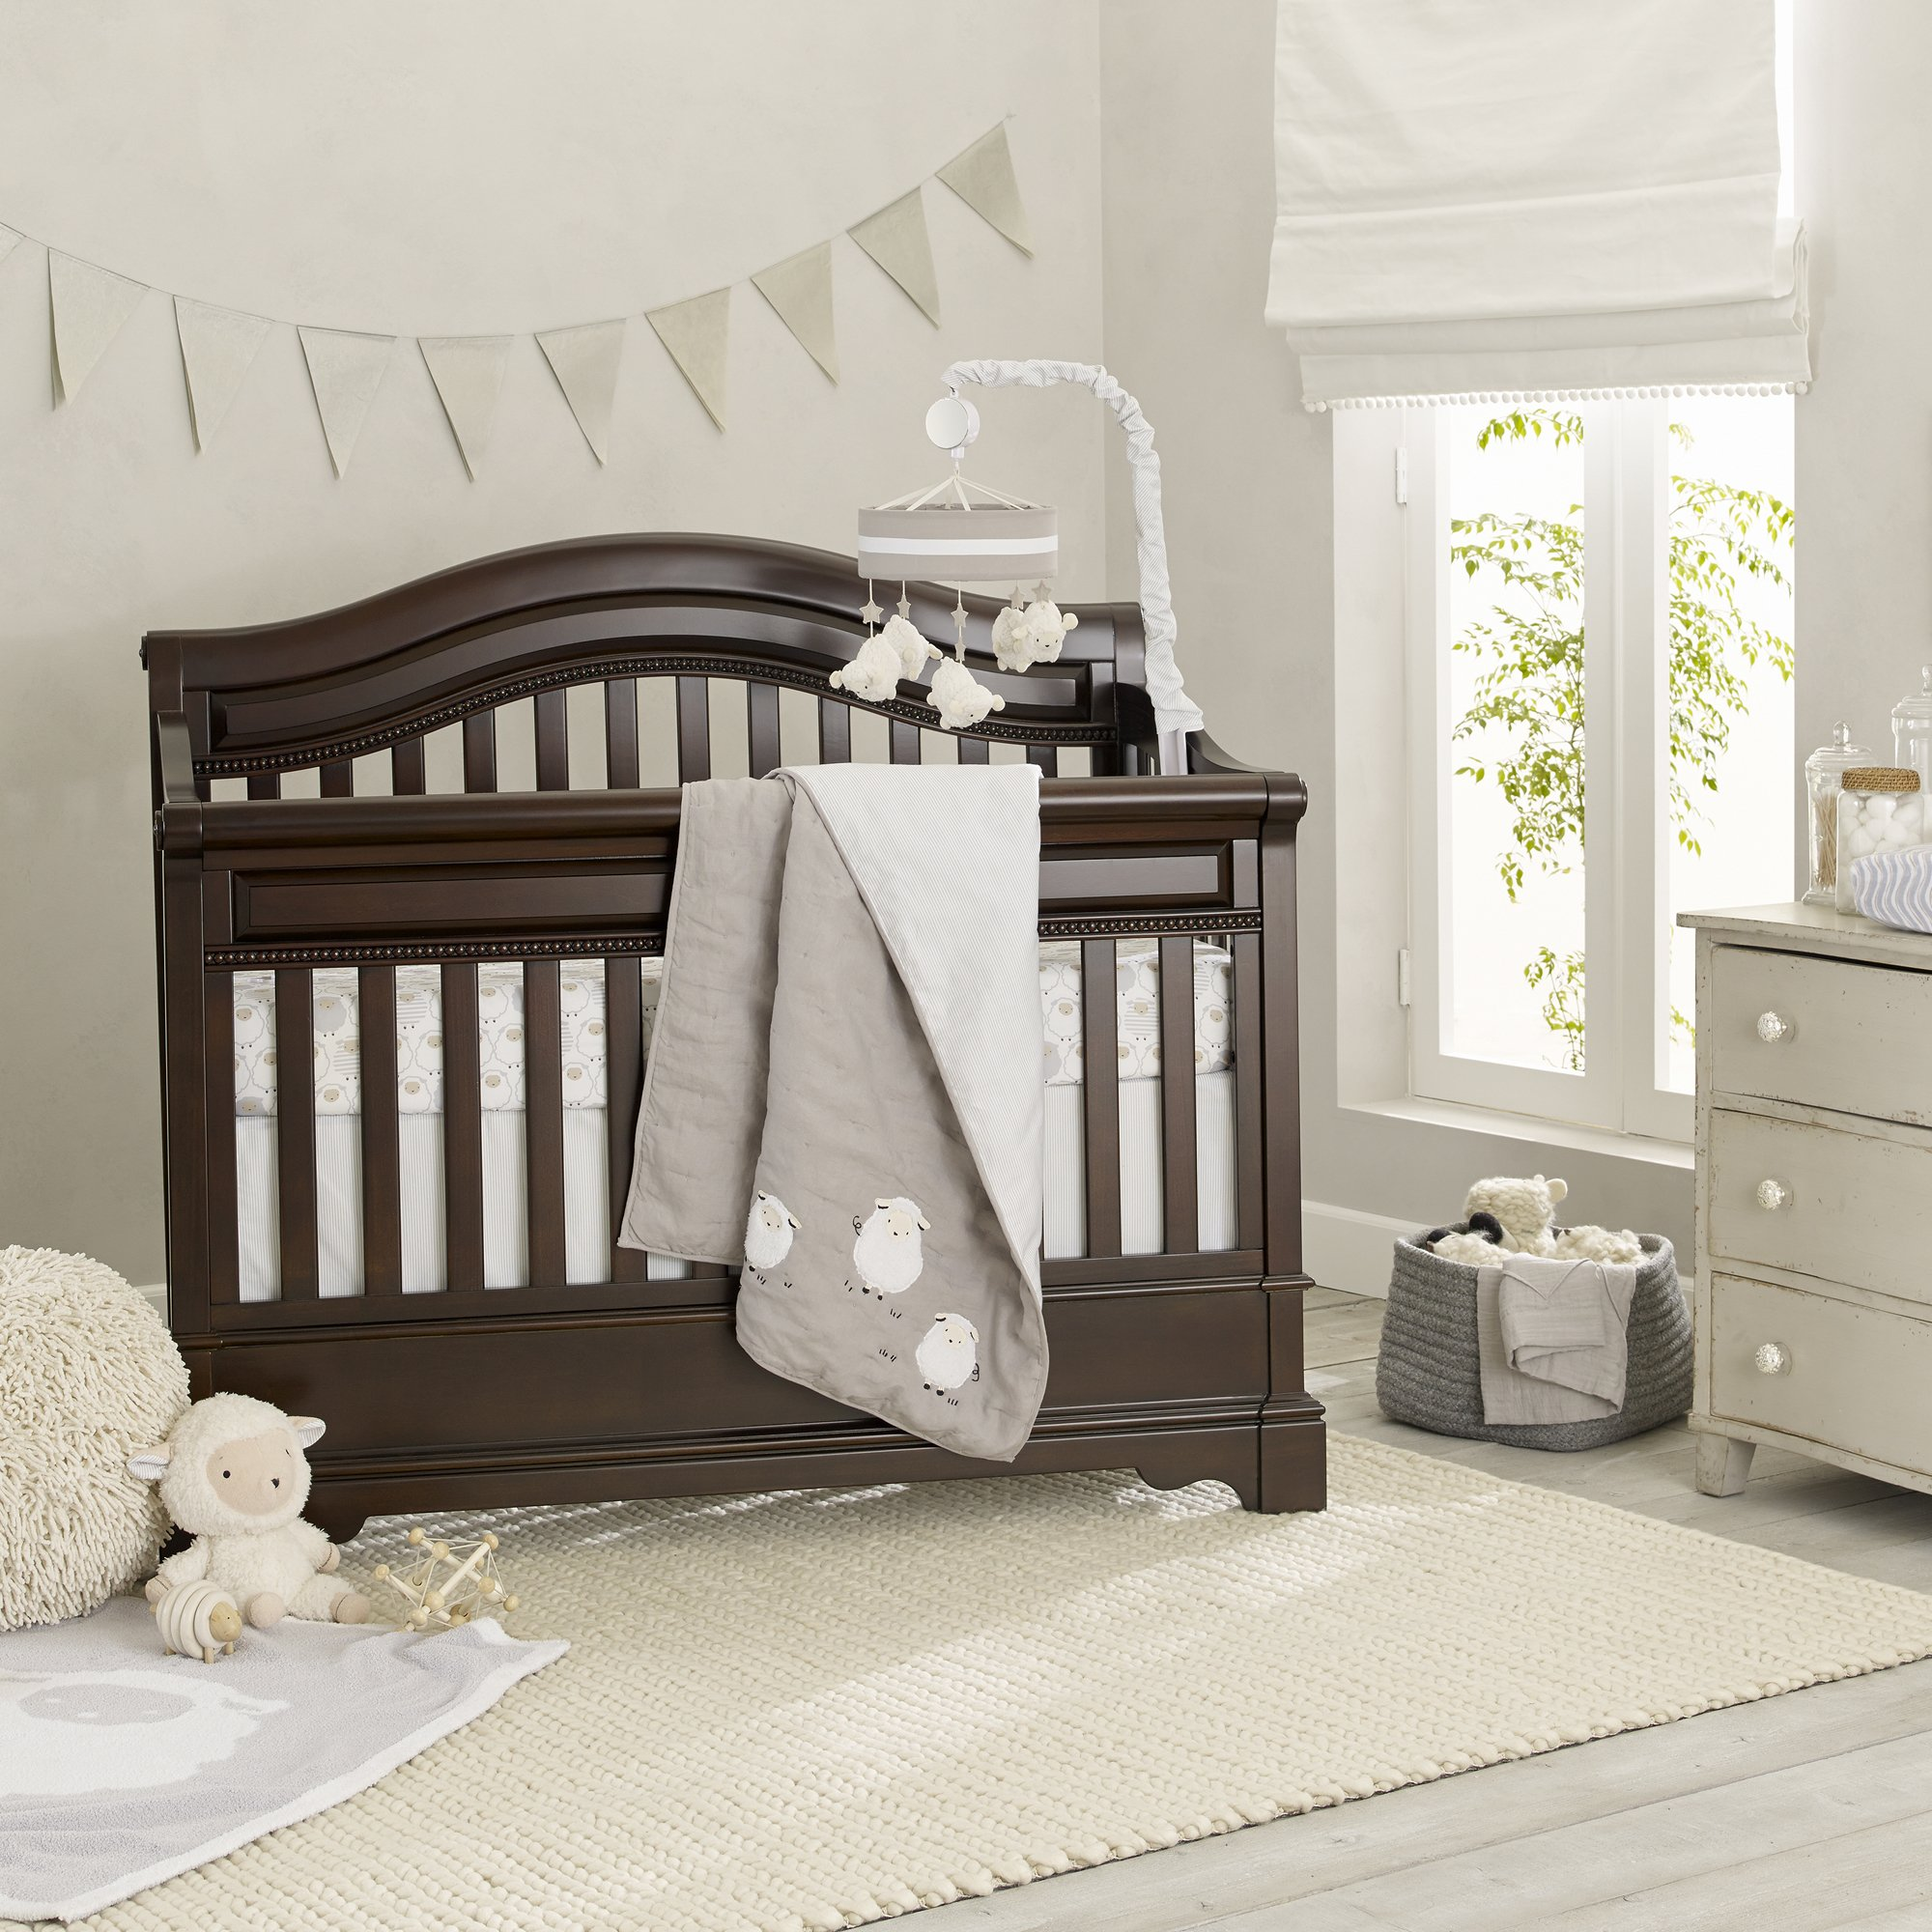 Goodnight Sheep 6 Piece Crib Bedding Set Baby Bed Crib